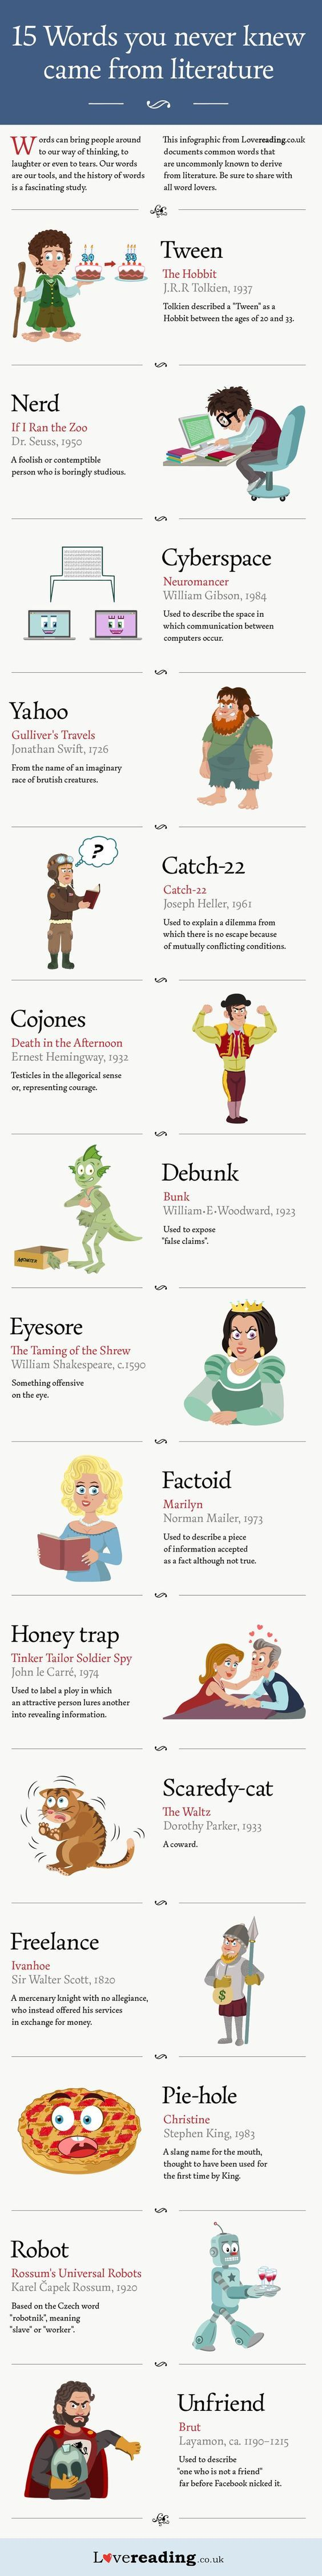 15 words you never knew came from classic literature!